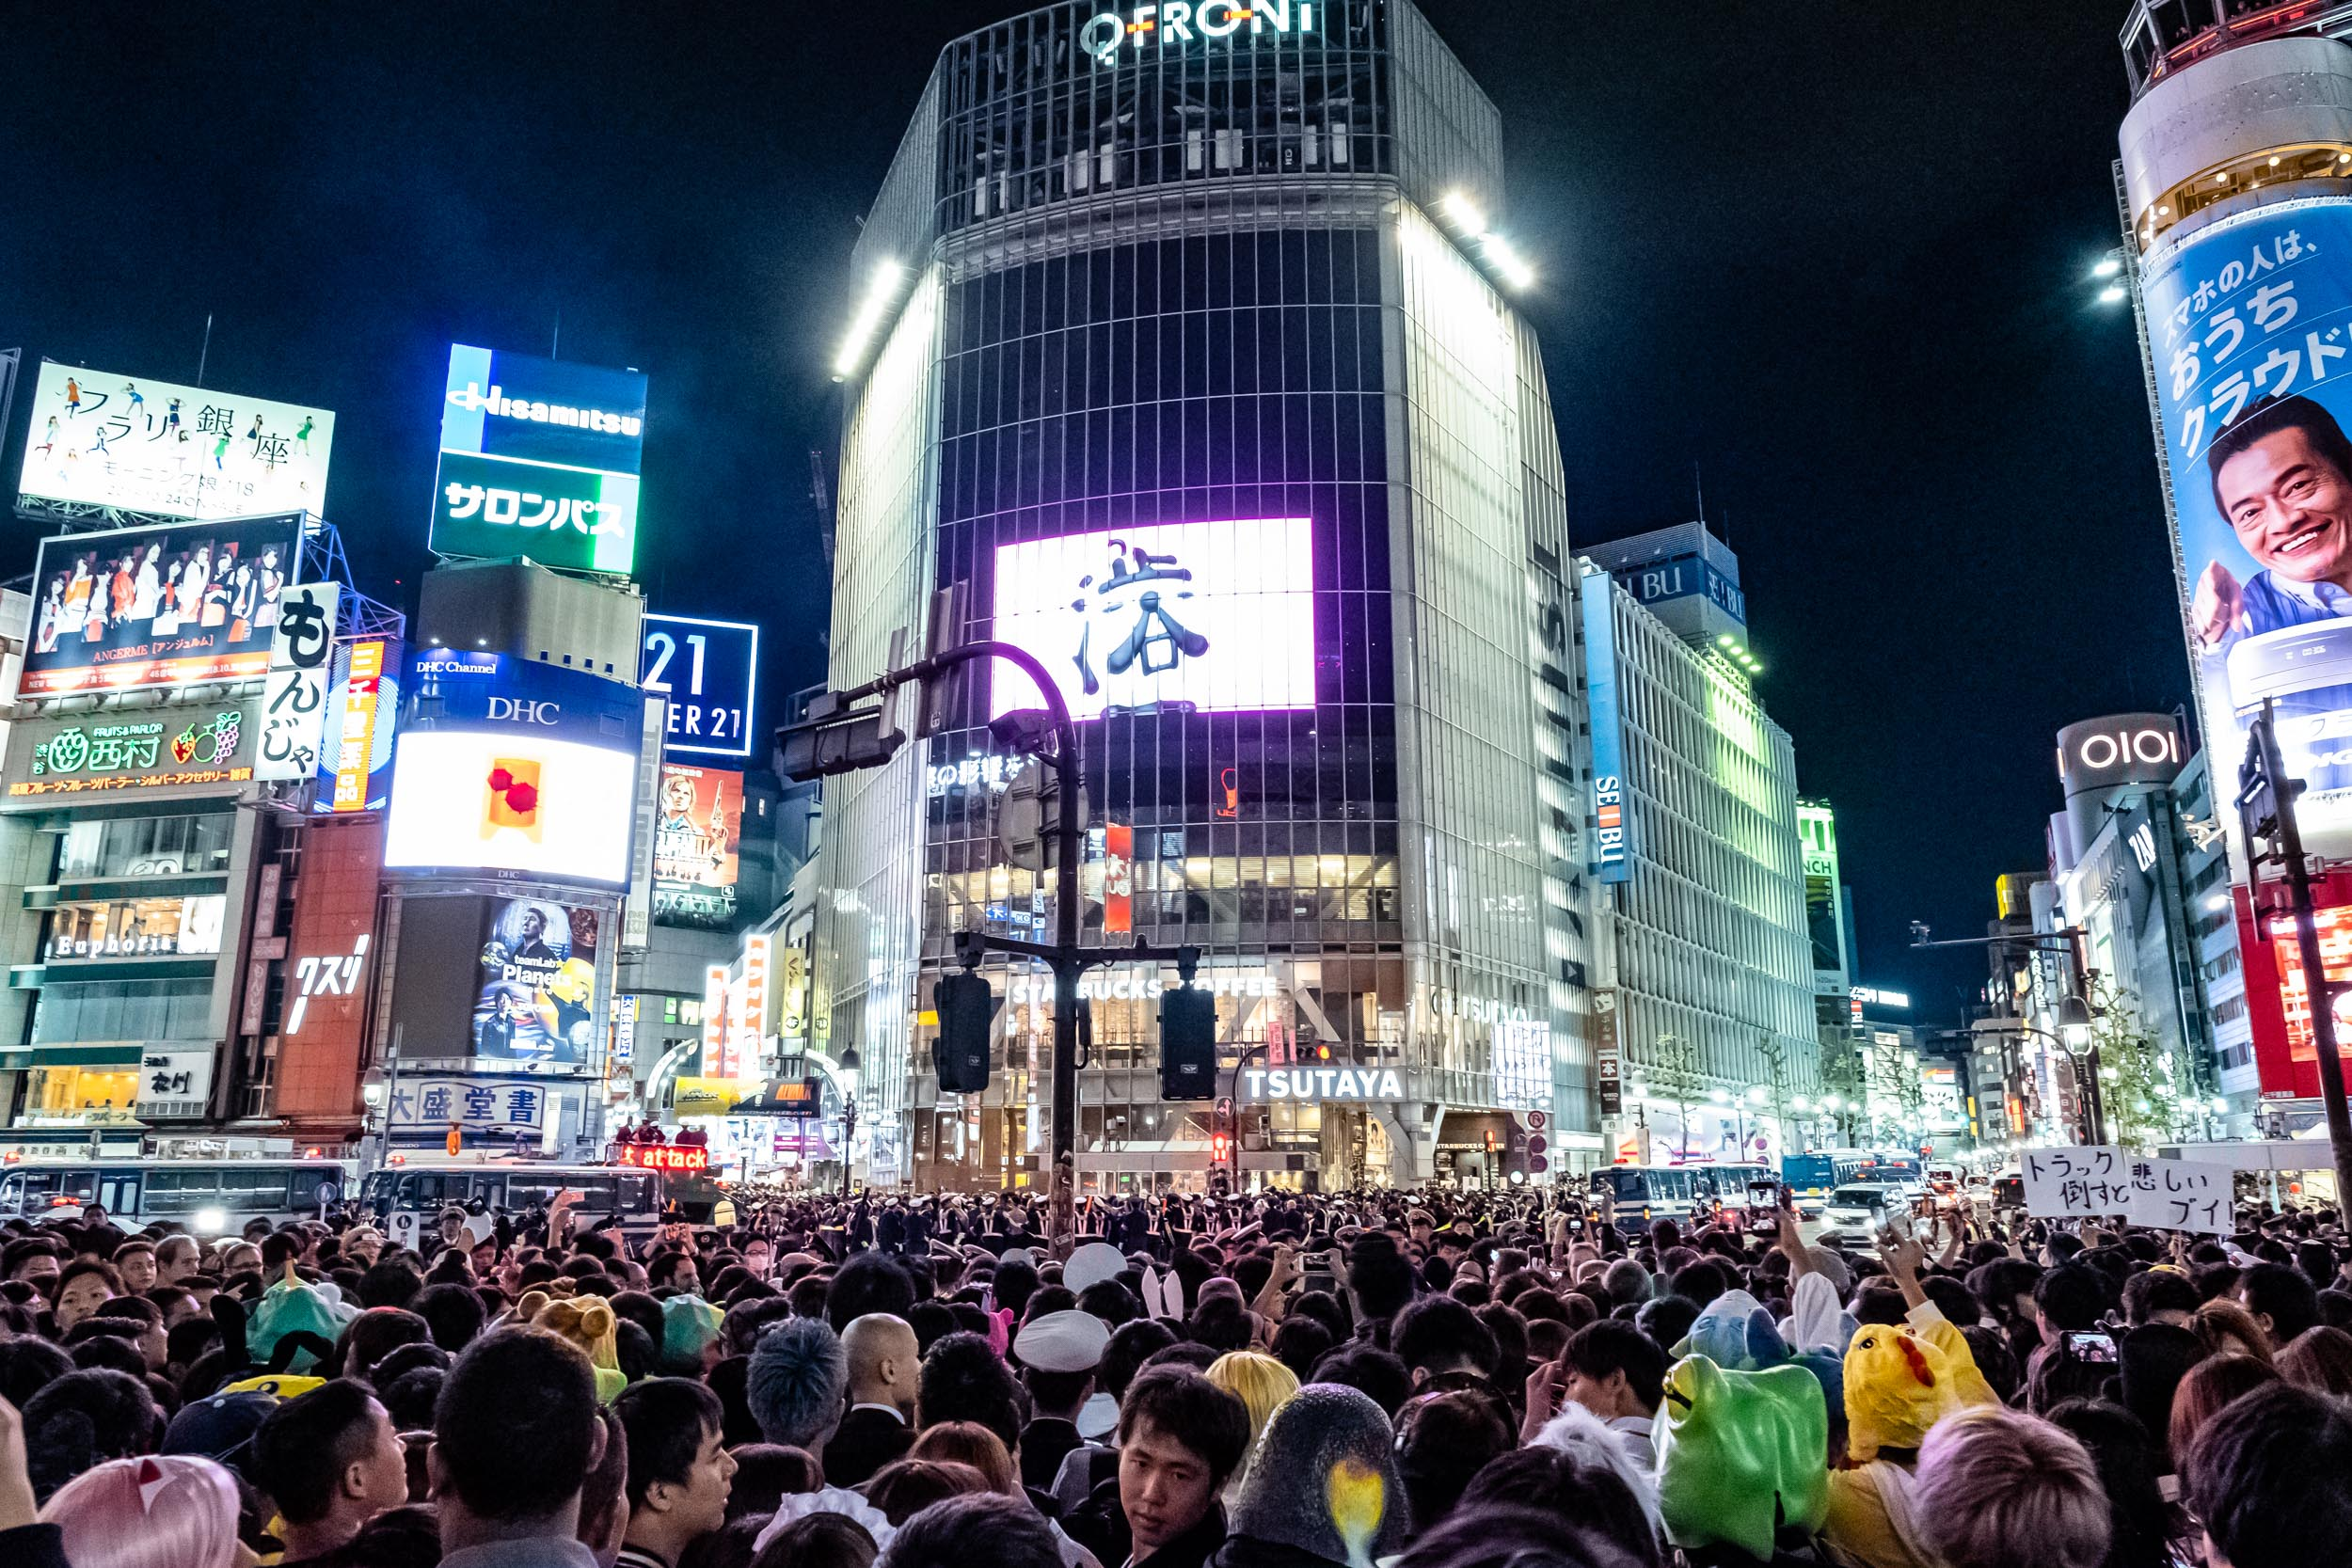 A sea of people in front of Shibuya Station trying to get over the famous crossing